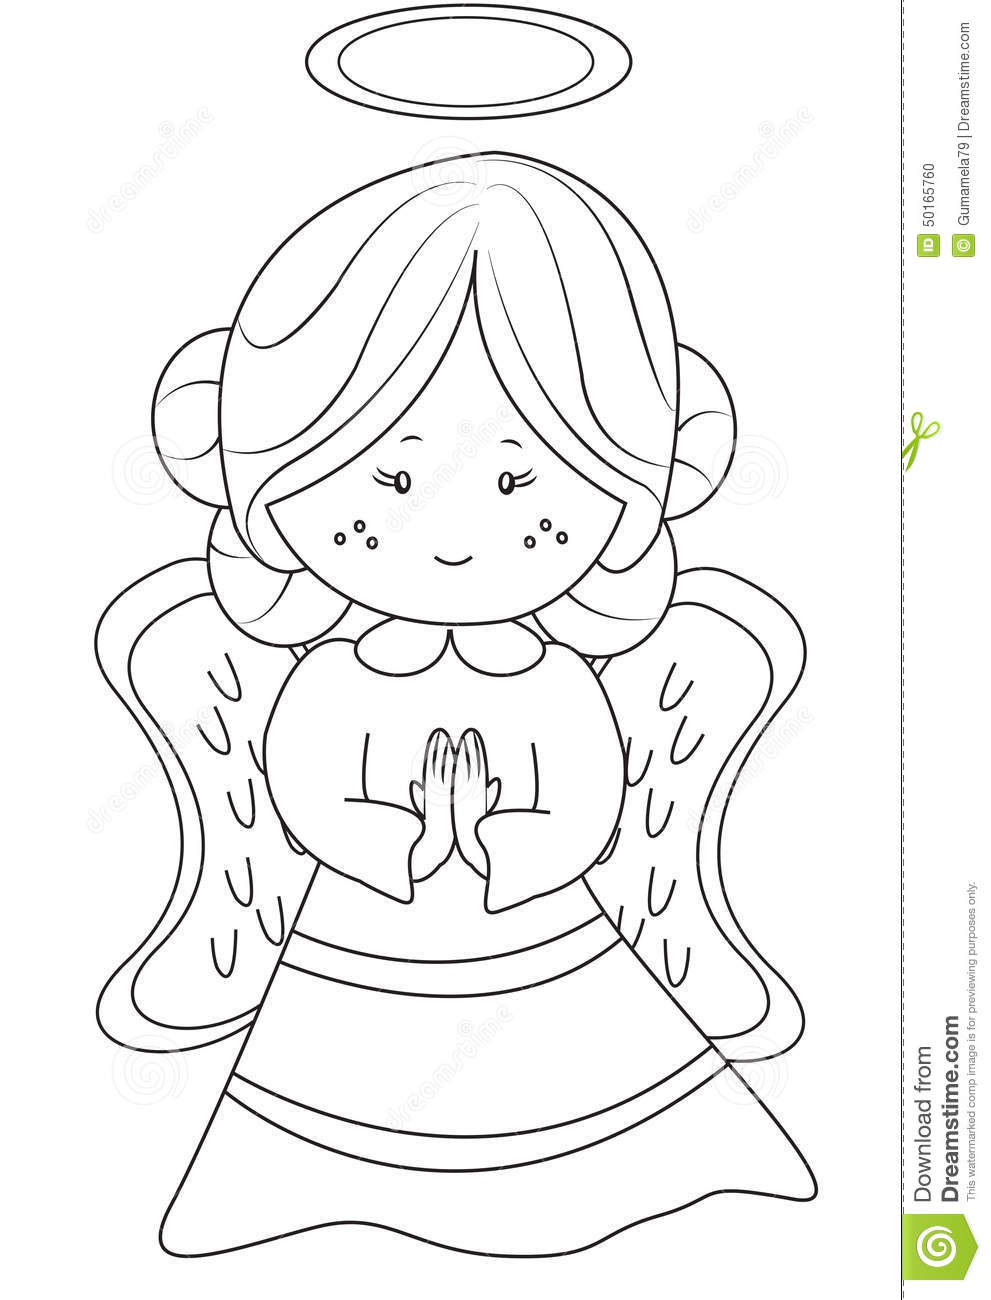 angel coloring page stock illustration image 50165760